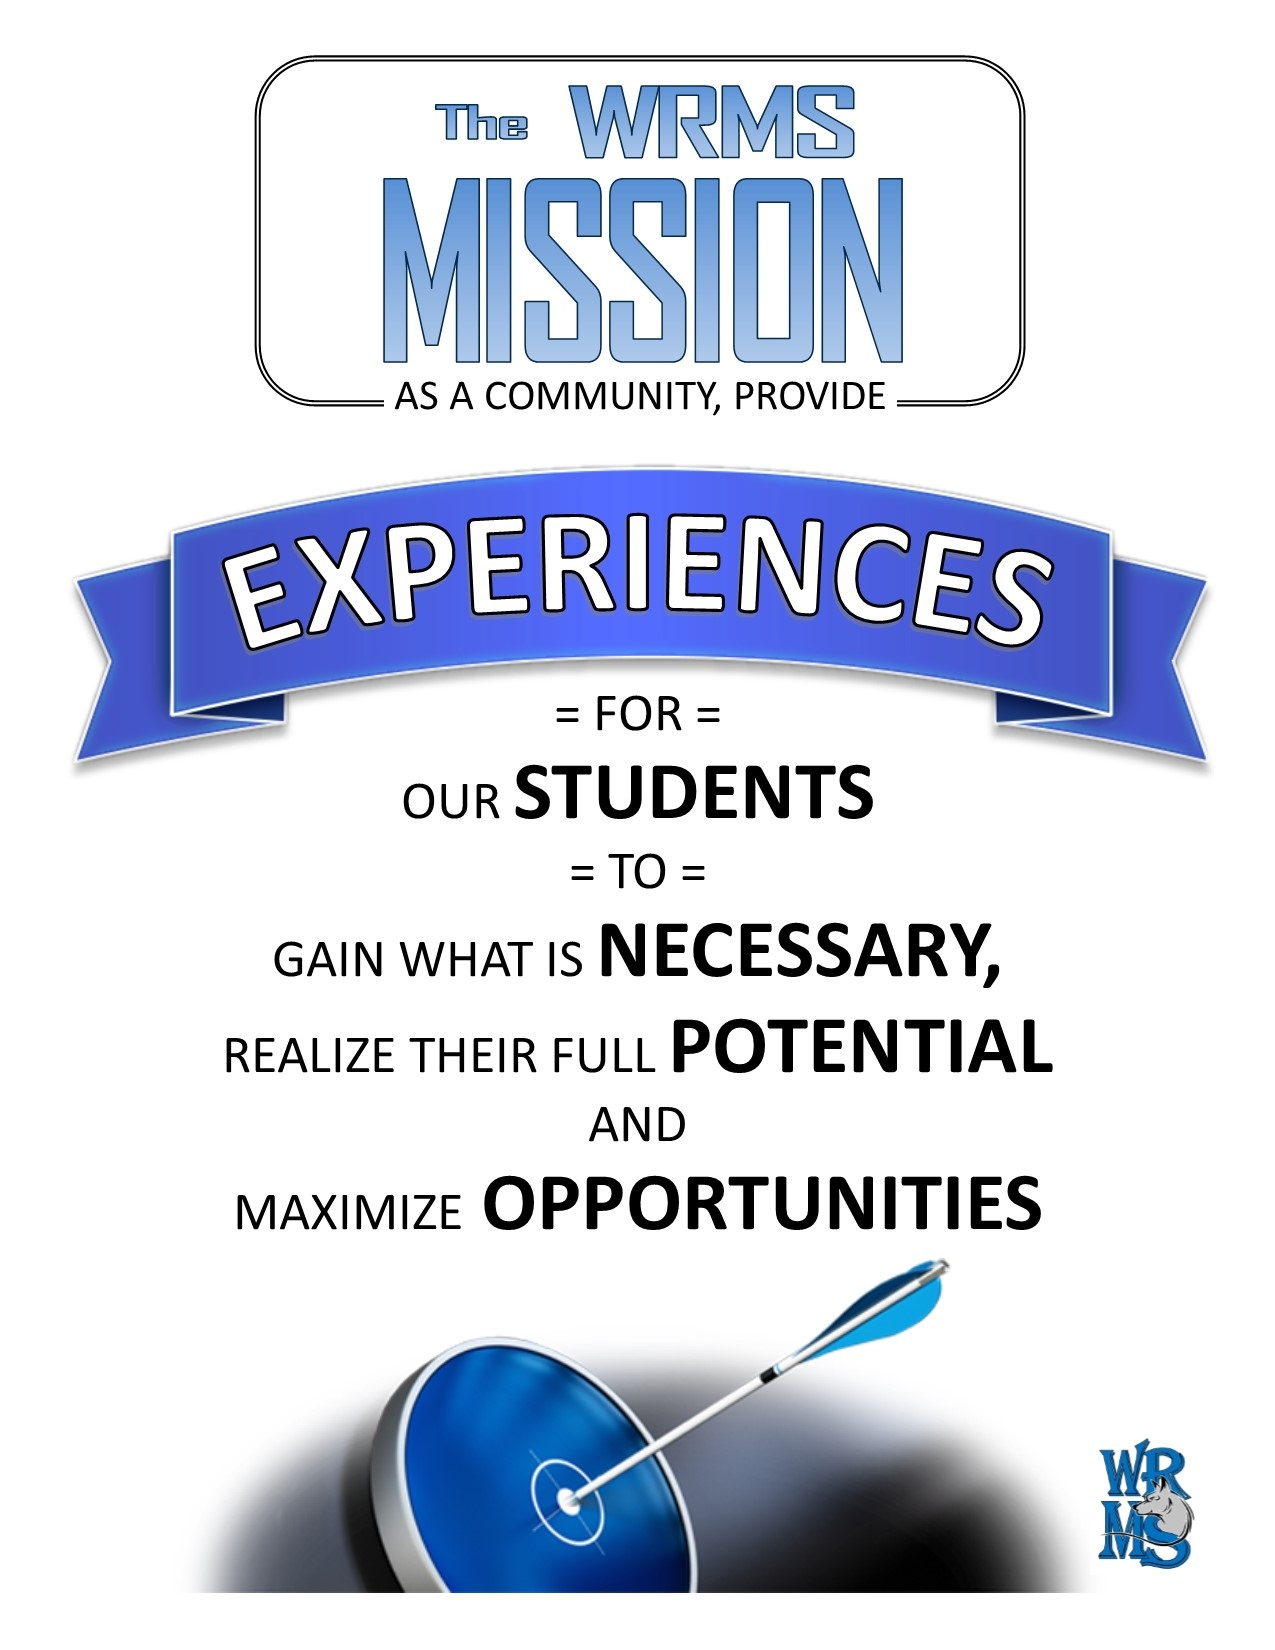 The WRSD is dedicated to providing all students with the knowledge, skills, tools, and opportunities that enable them to develop their full potential and be successful in meeting their career goals. This is supported by the active engagement of students, parents, teachers, and community members in our students' learning.